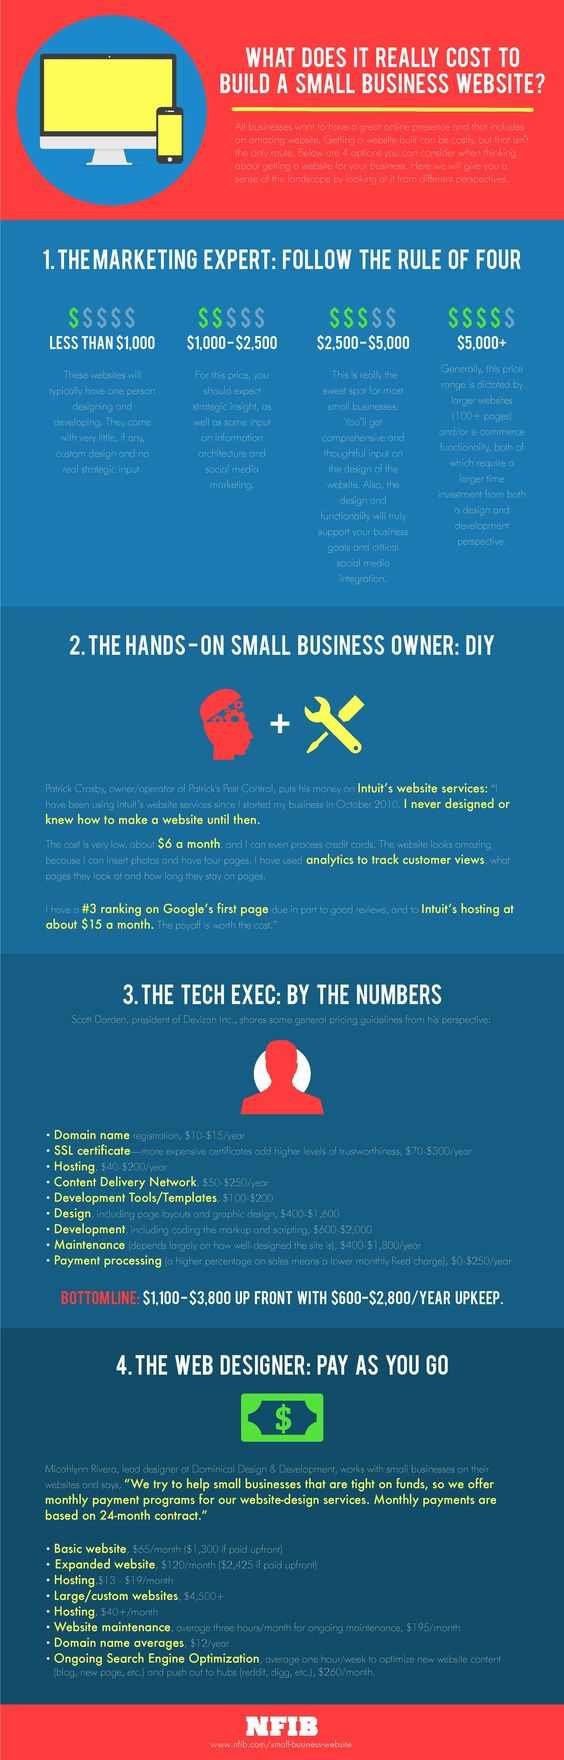 What Does It Really Cost To Build A Small Business Website? [INFOGRAPHIC] | NFIB